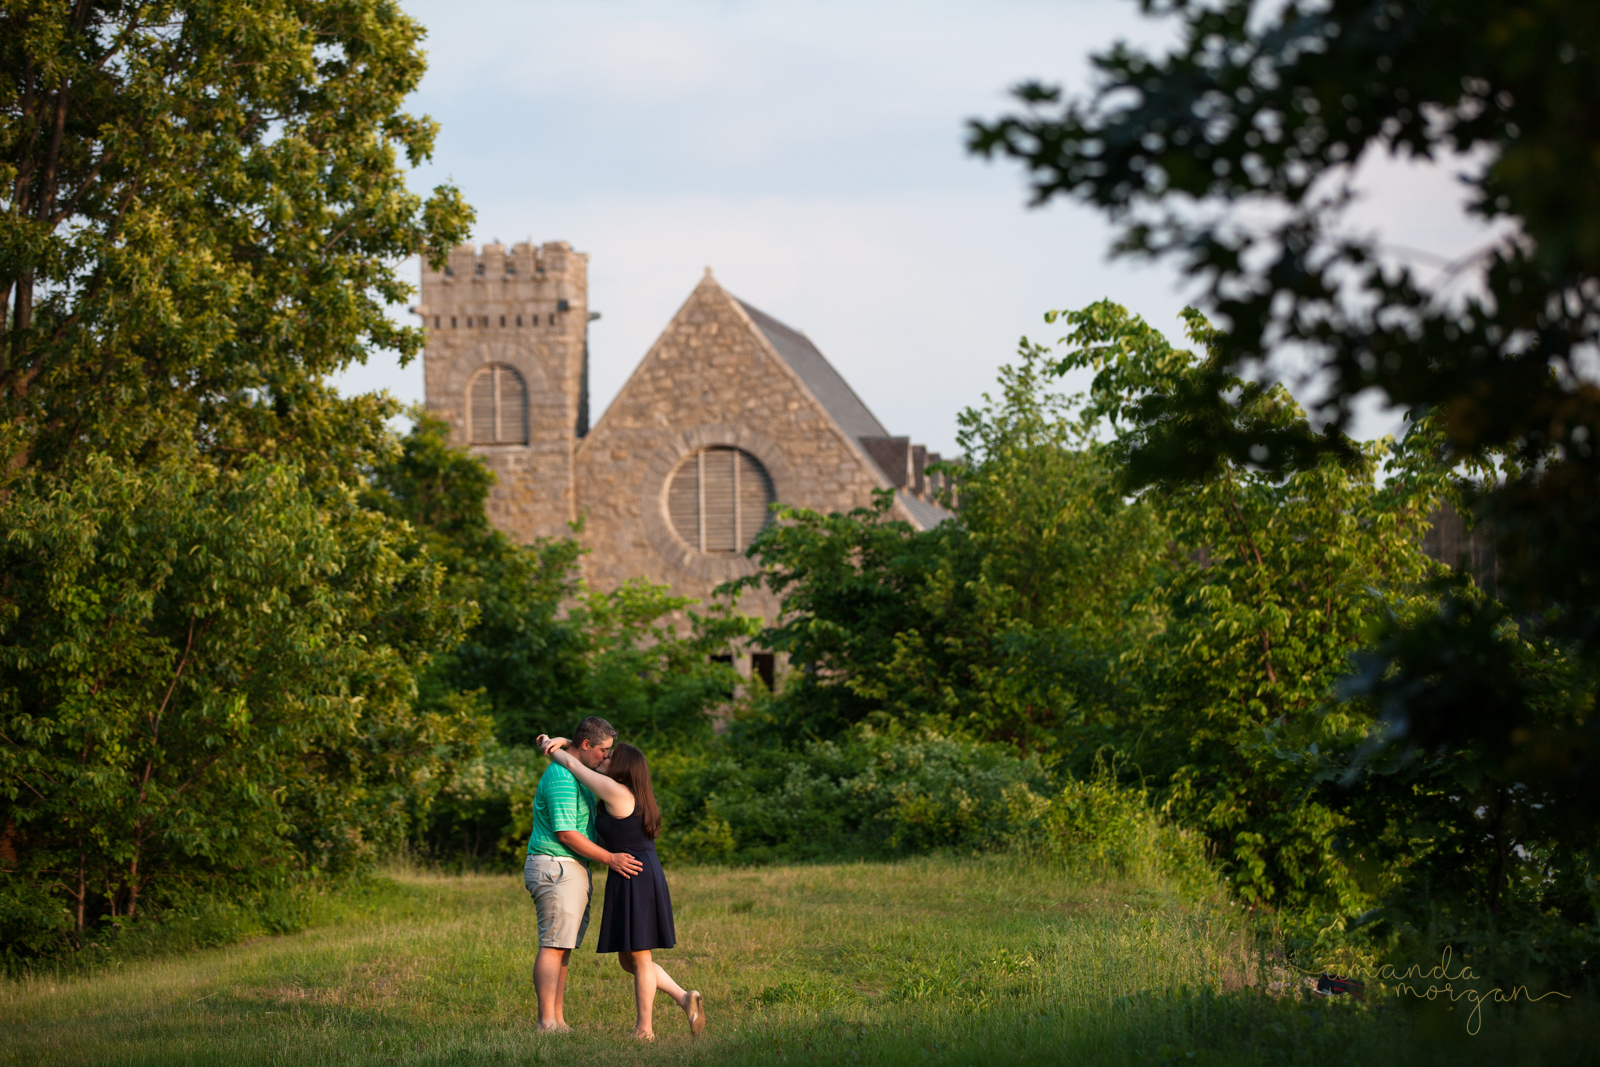 Old-Stone-Church-Engagement-Session-Amanda-Morgan-16.jpg